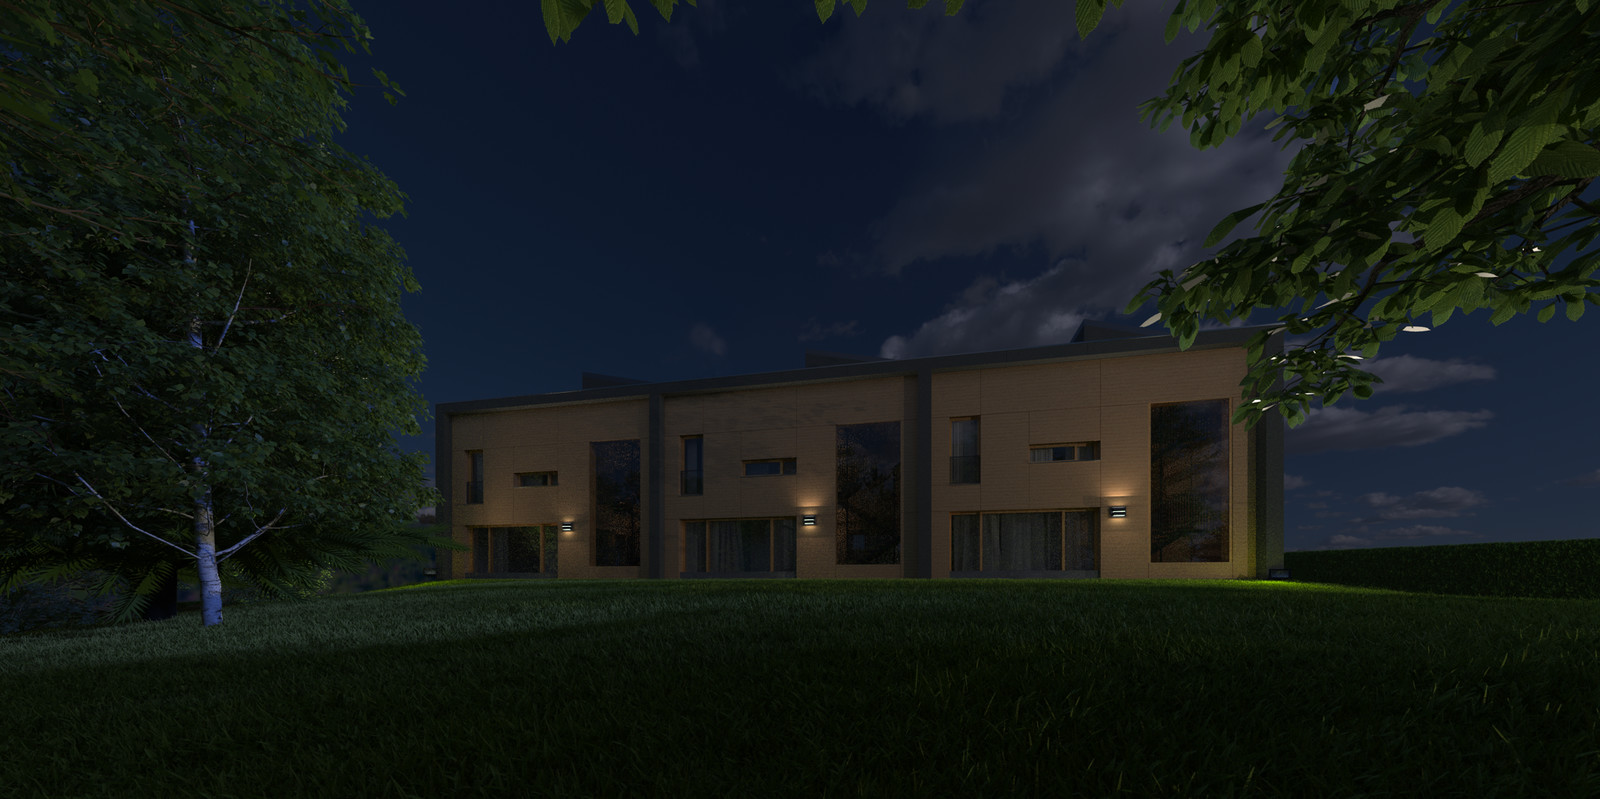 06 Exterior N ground New 03B Night A  KP webpage of project: http://www.kemppro.com/KP_3D_communication_3_Villas_Veyrier.html